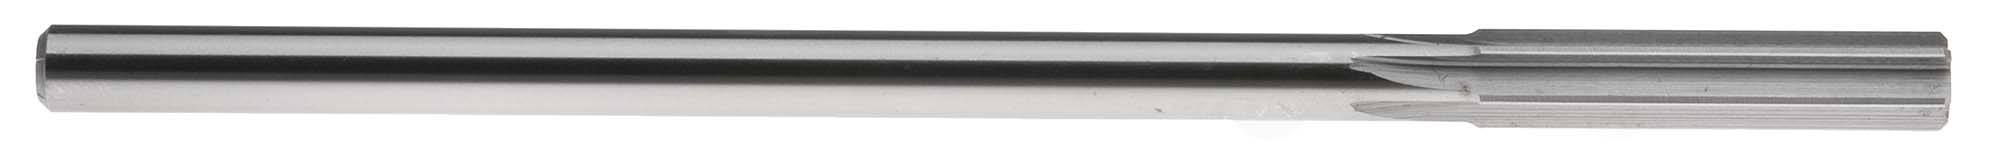 "R (.339"") Straight Shank Chucking Reamer, Straight Flute, High Speed Steel"